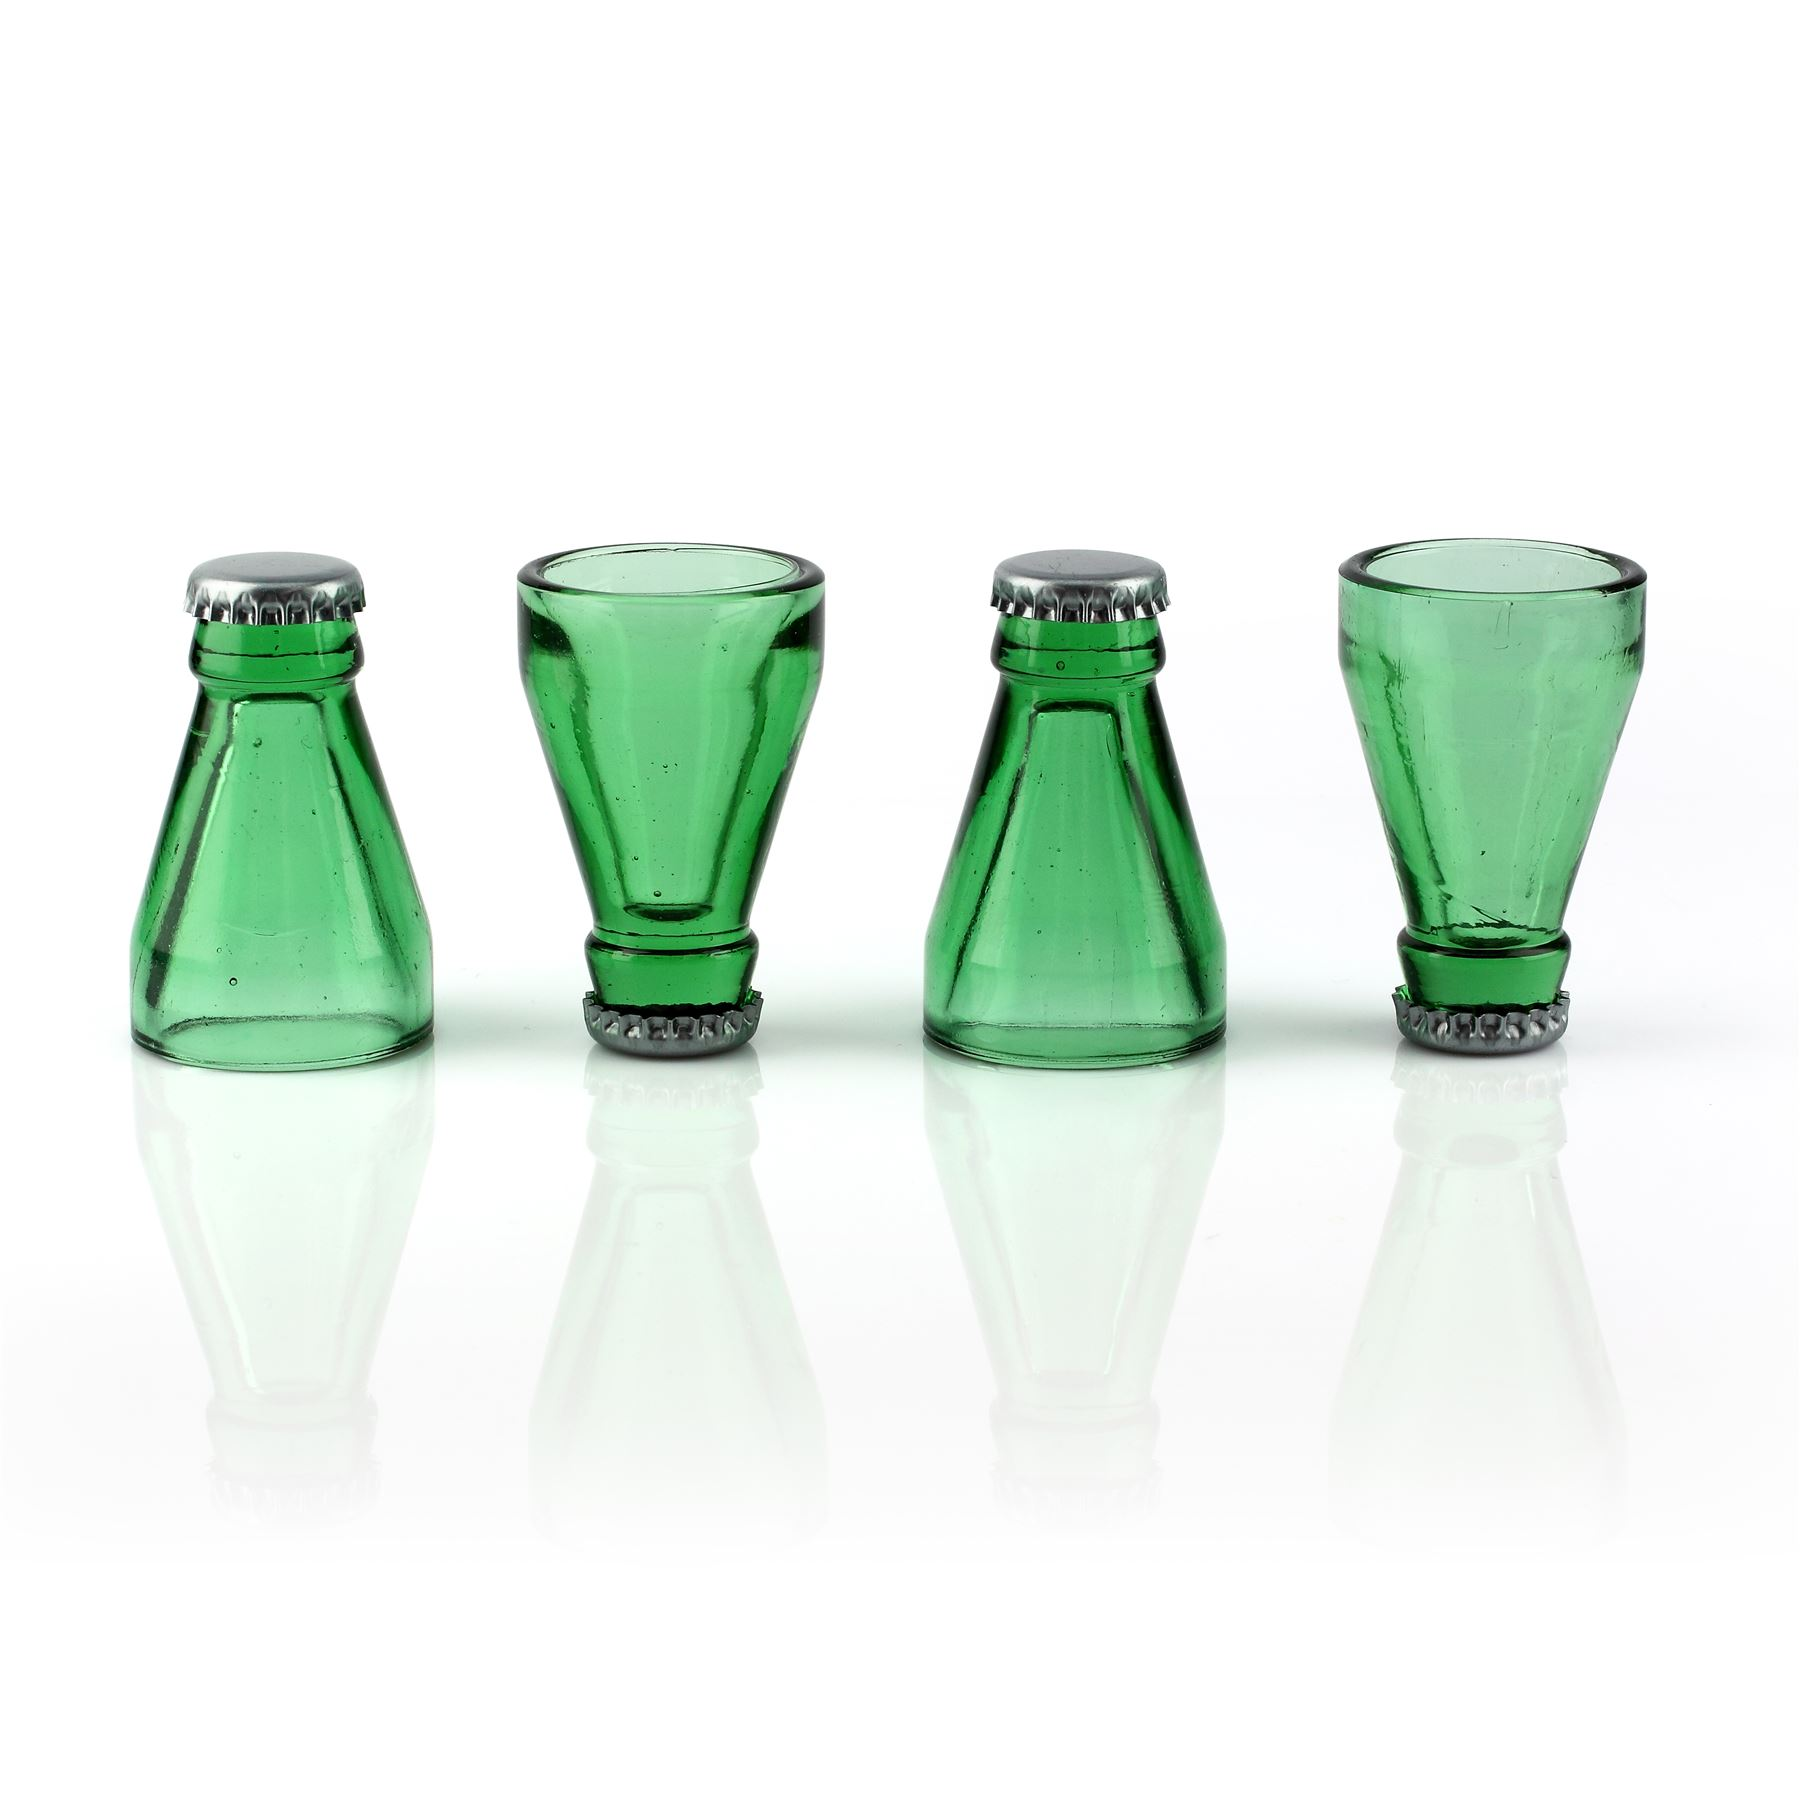 Thumbs Up Top Shots Bottle Top Recycled Glass Shot Glasses Set of 4